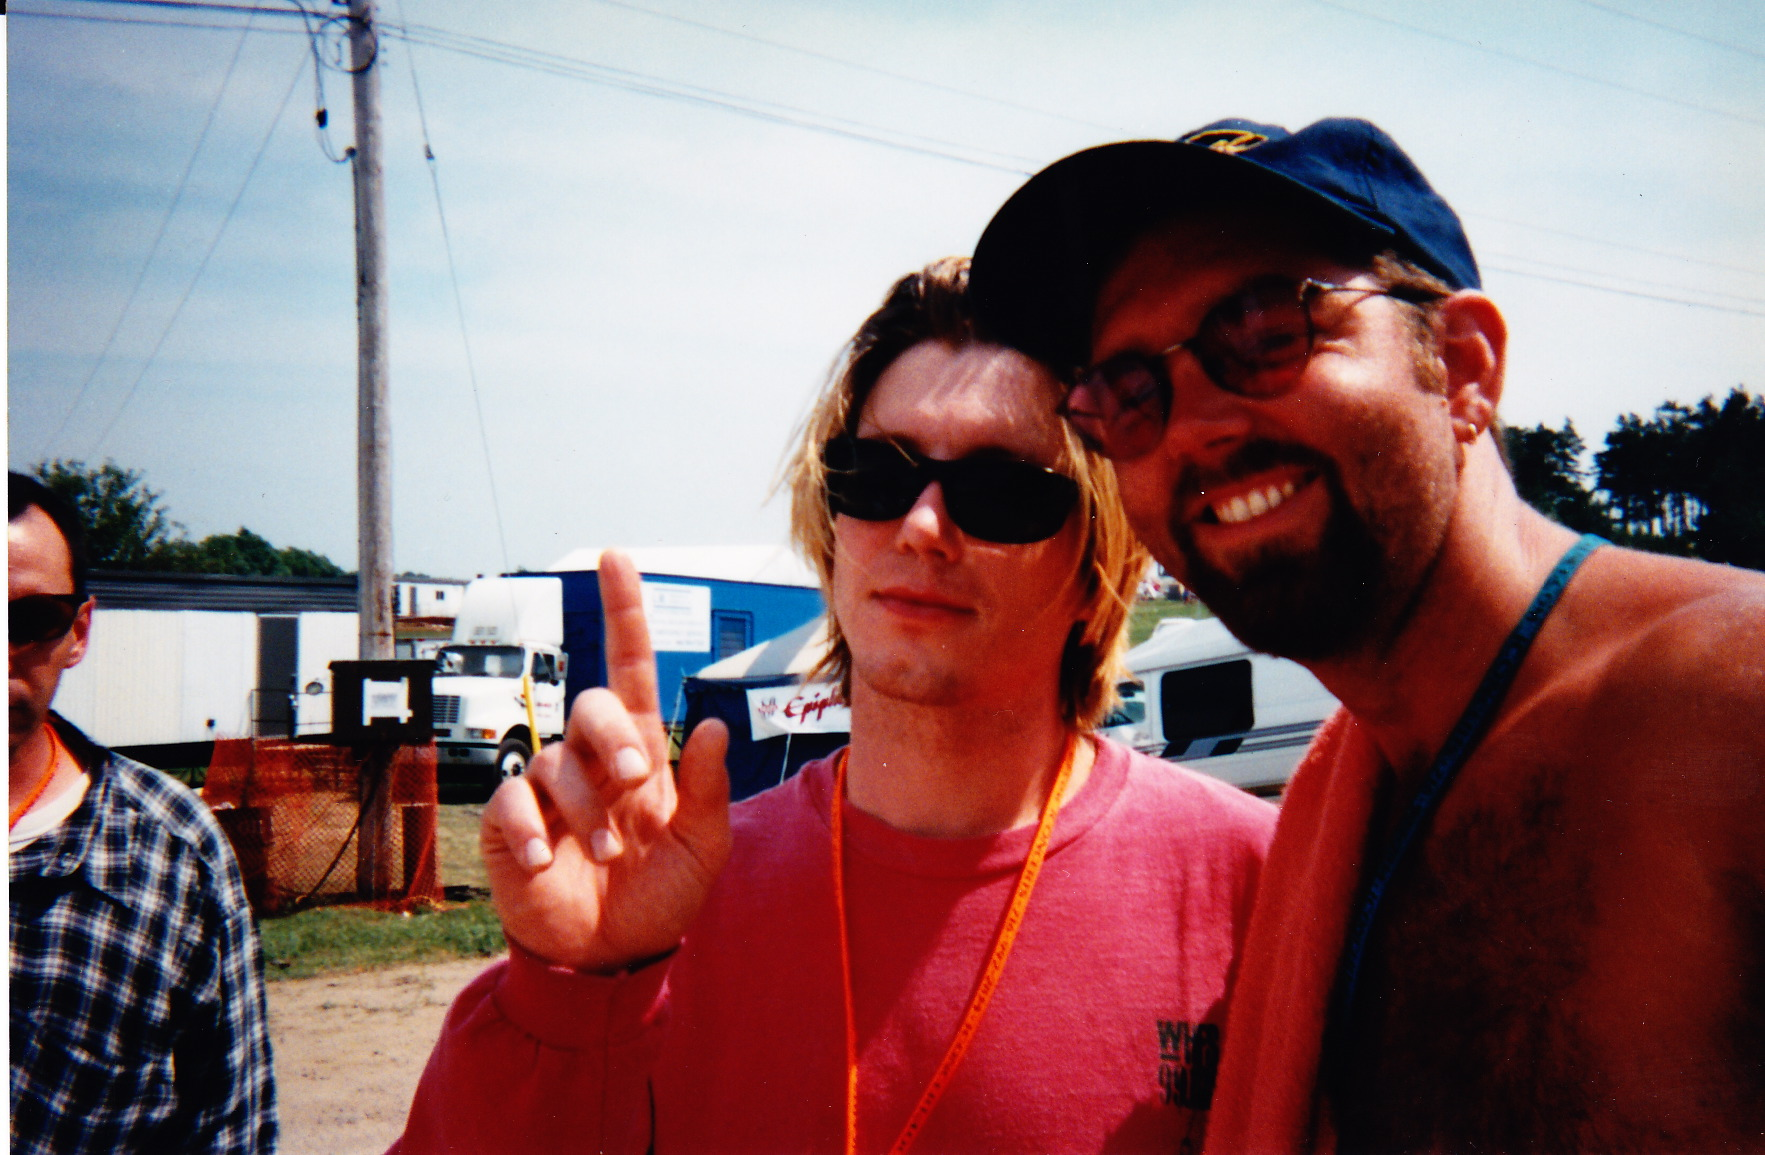 Johnny Reznik from Goo Goo Dolls and Dave